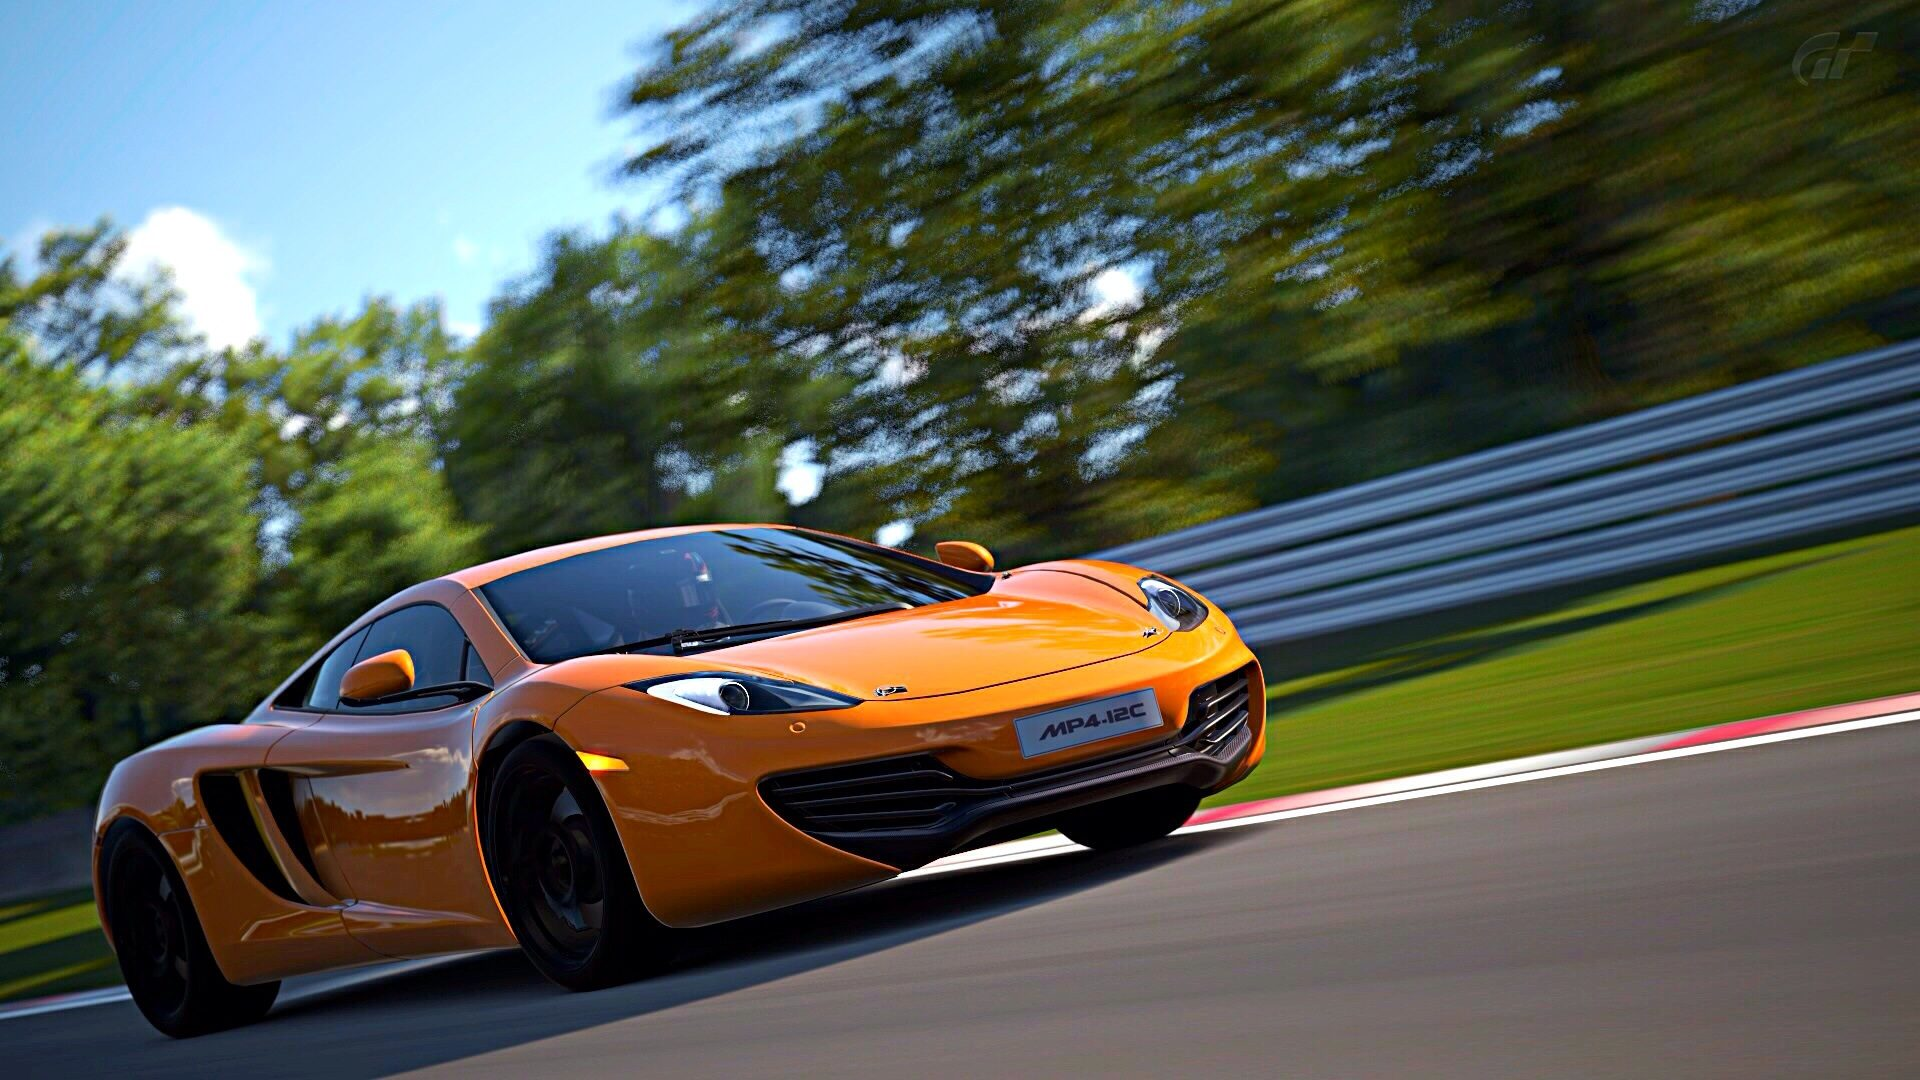 MP4-12C GTC Brands Hatch (2).jpg